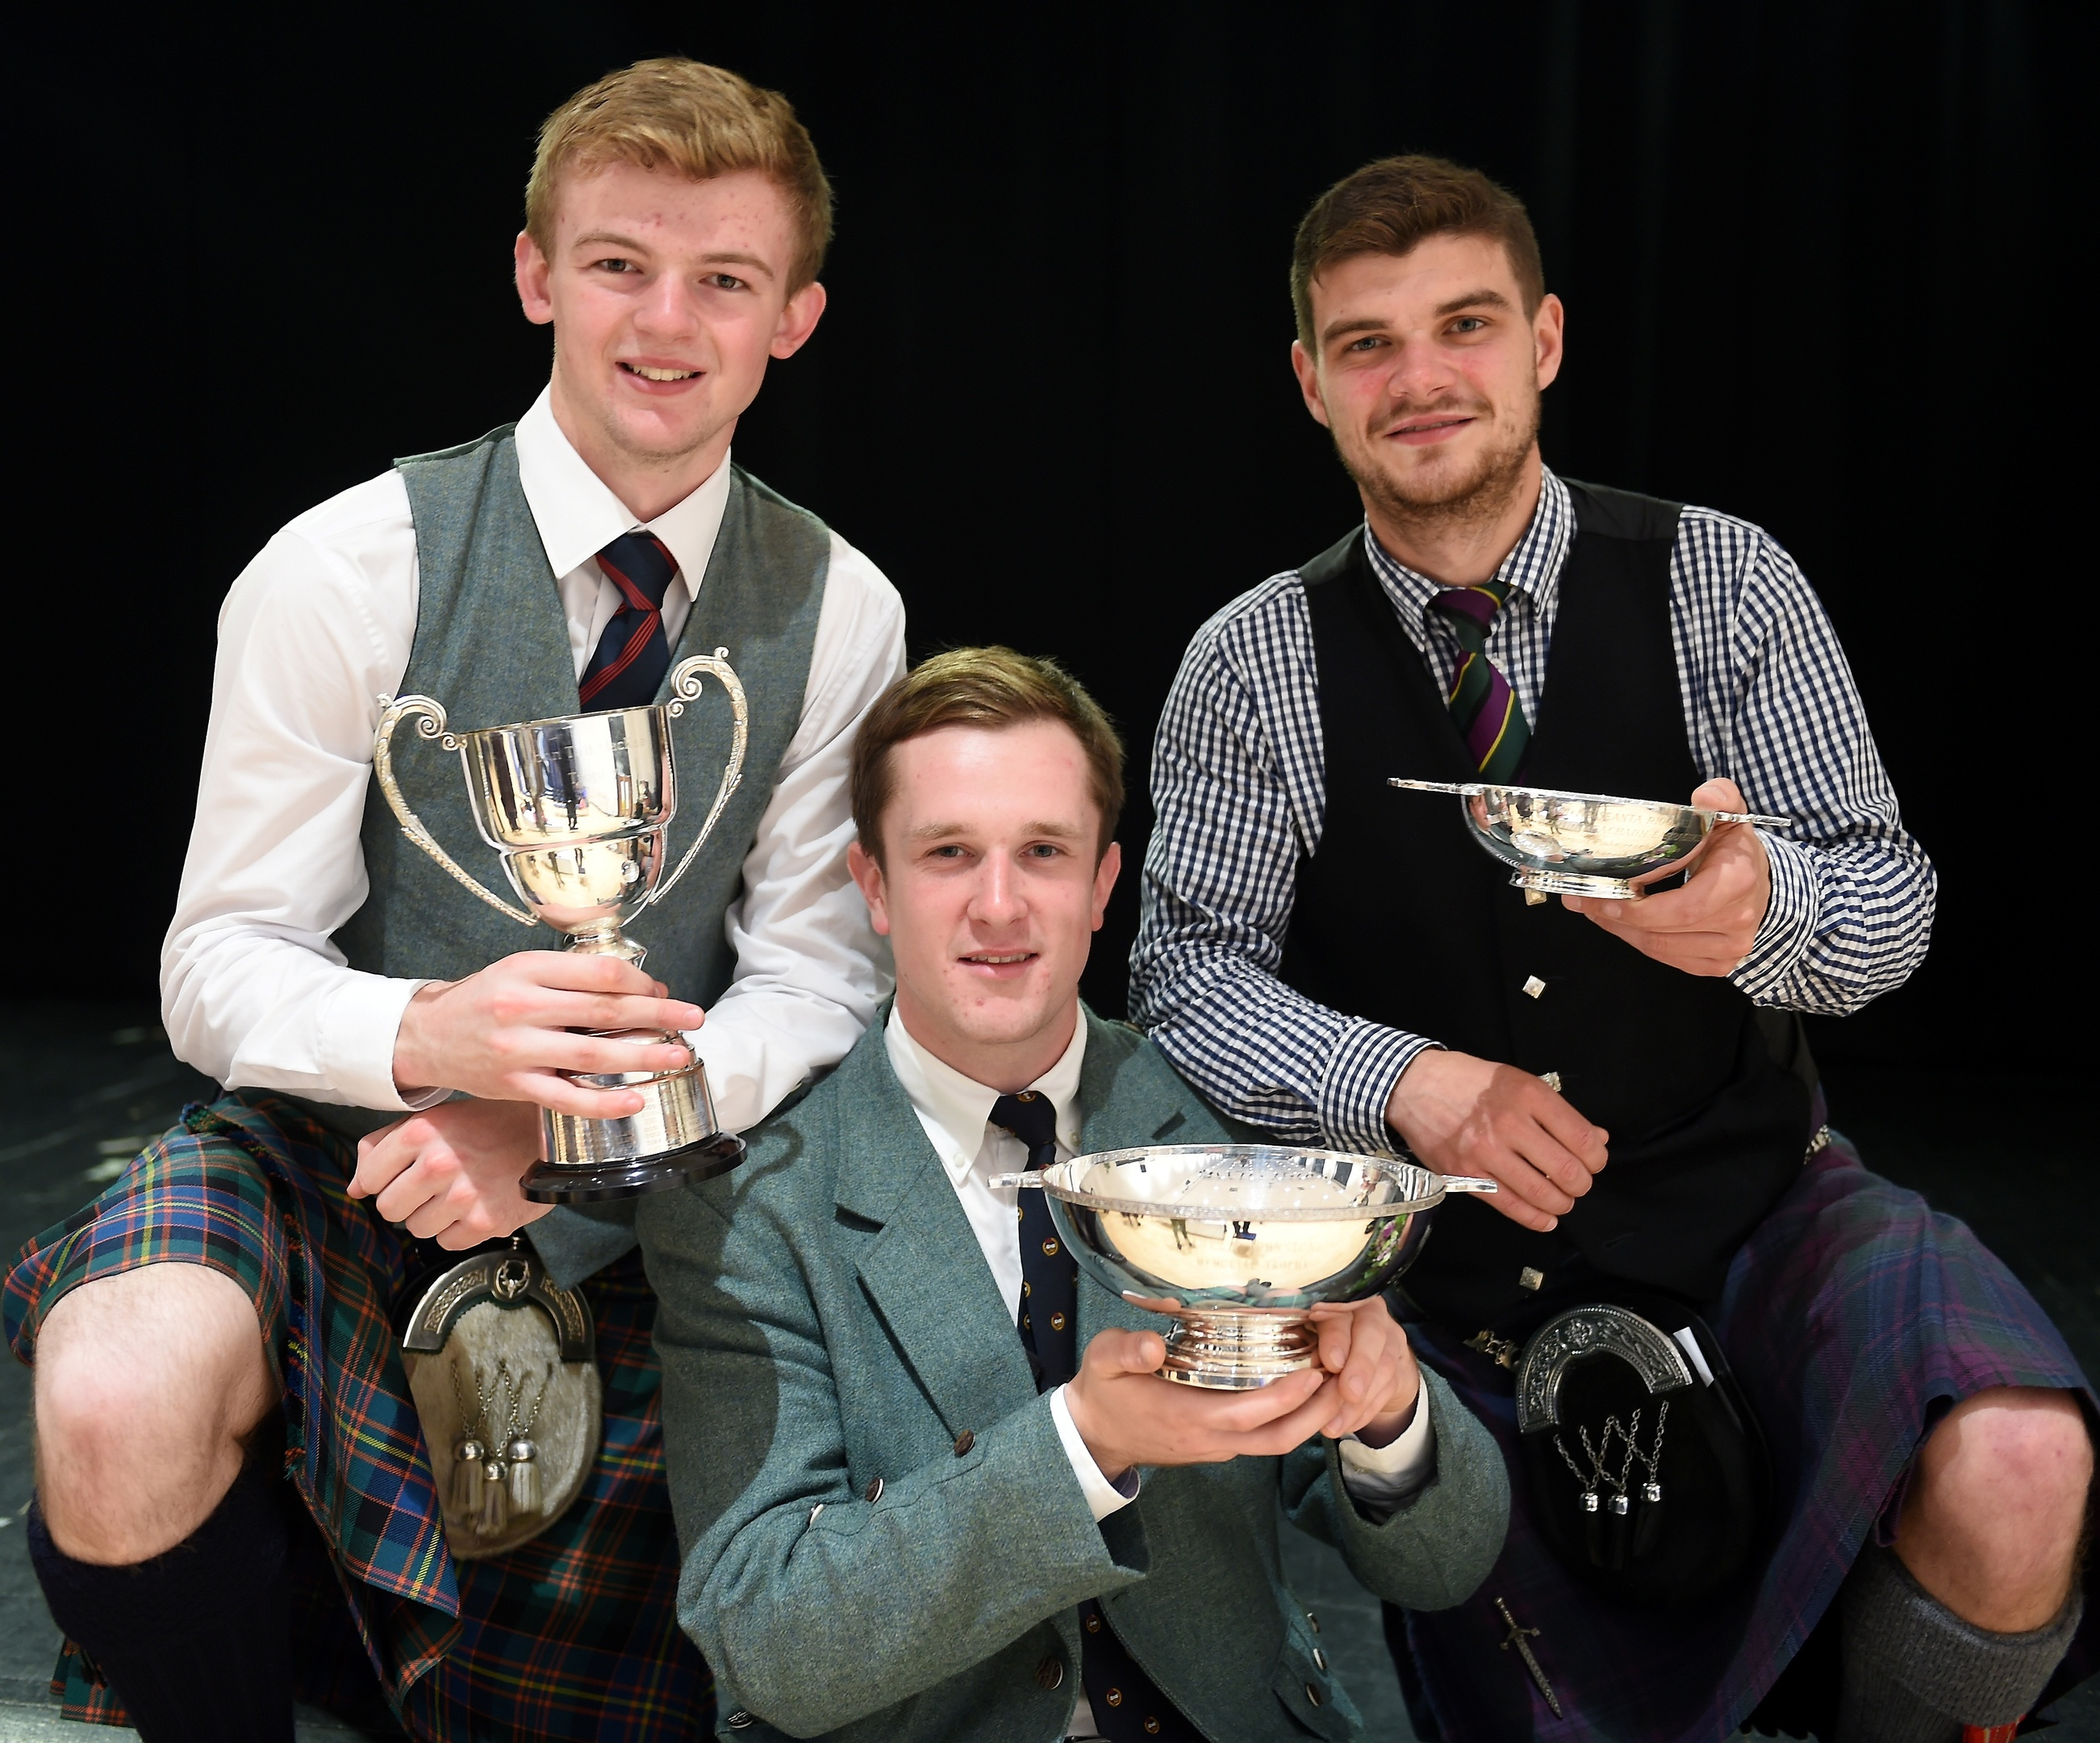 Three winners in the adult piping classes, (L-R) Sandy Cameron of Roy Bridge with the John T. MacRae Cup for the March, Strathspey and Reel; Charles Macdonald of Inverness with the James R. Johnston Memorial Trophy for Piobaireachd and Angus MacColl of Benderloch with the Argyllshire Gathering Quaich for the Hornpipe and Jig competition in Lochaber High School.